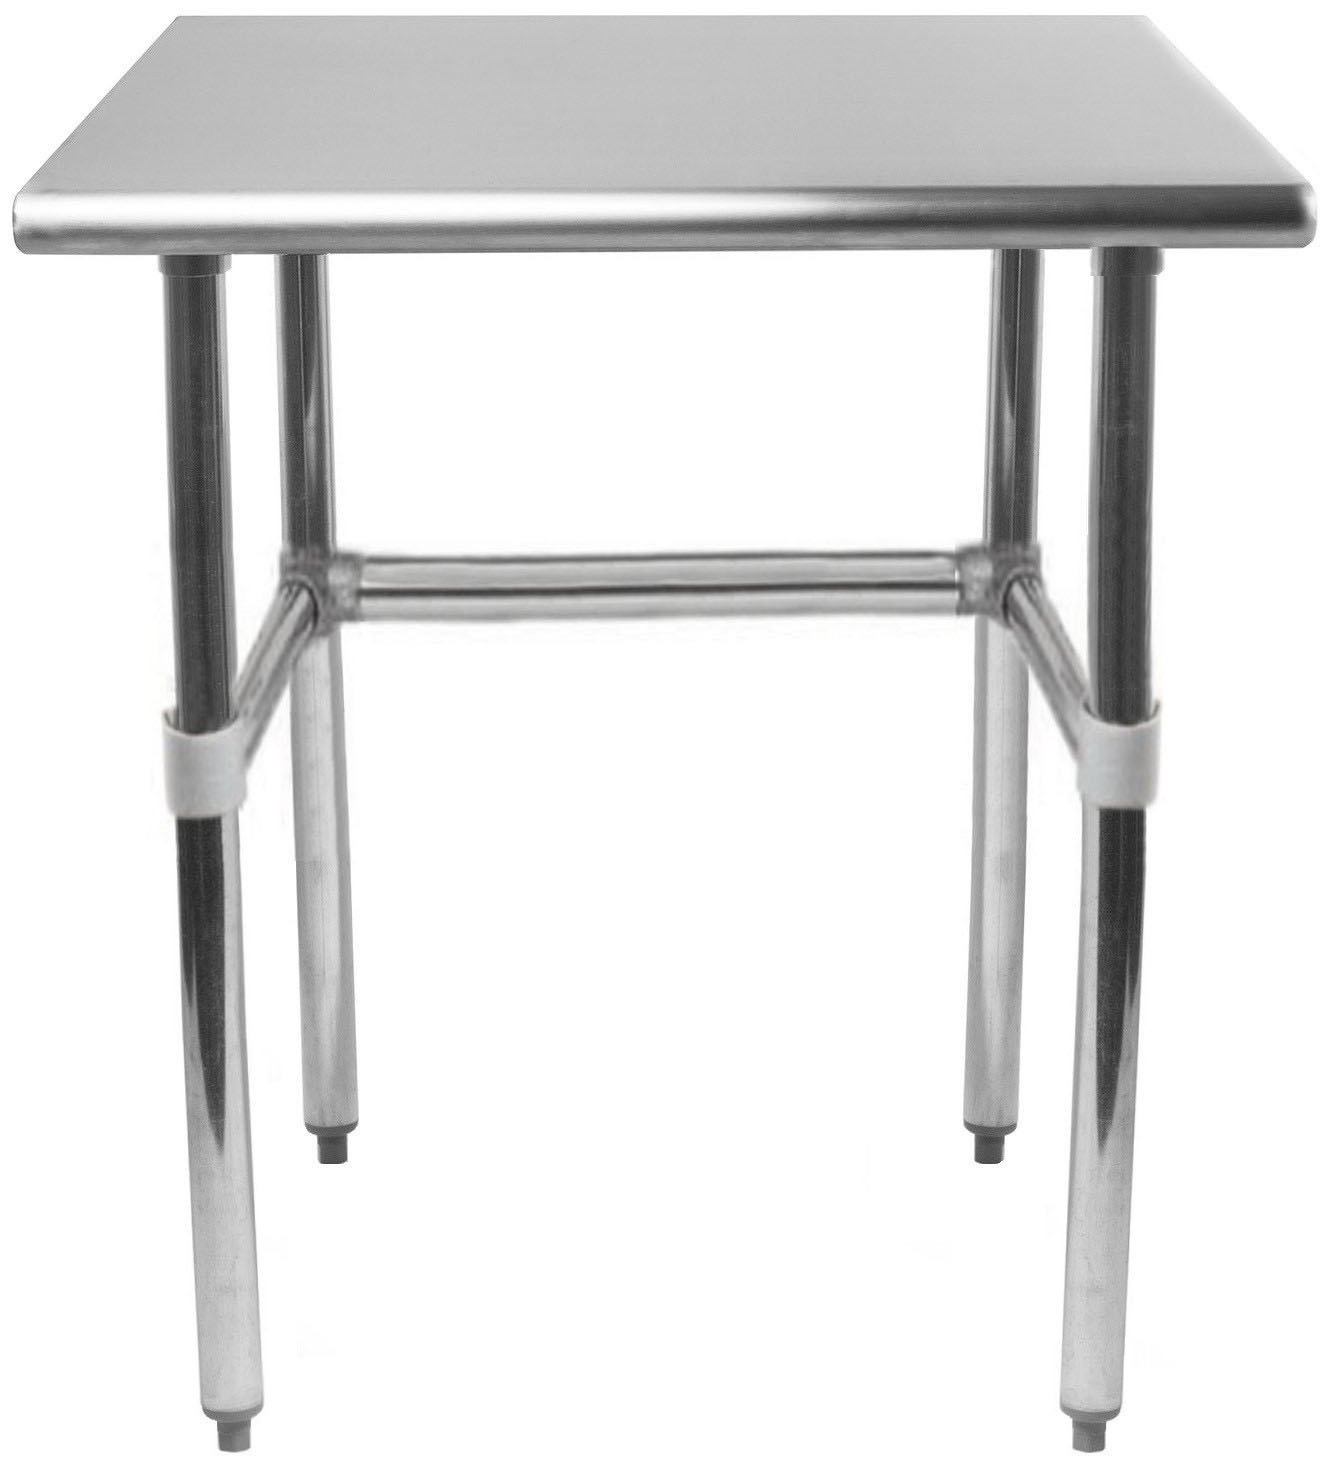 AmGood 24'' X 24'' Stainless Steel Work Table Open Base | NSF Kitchen Island Food Prep | Laundry Garage Utility Bench